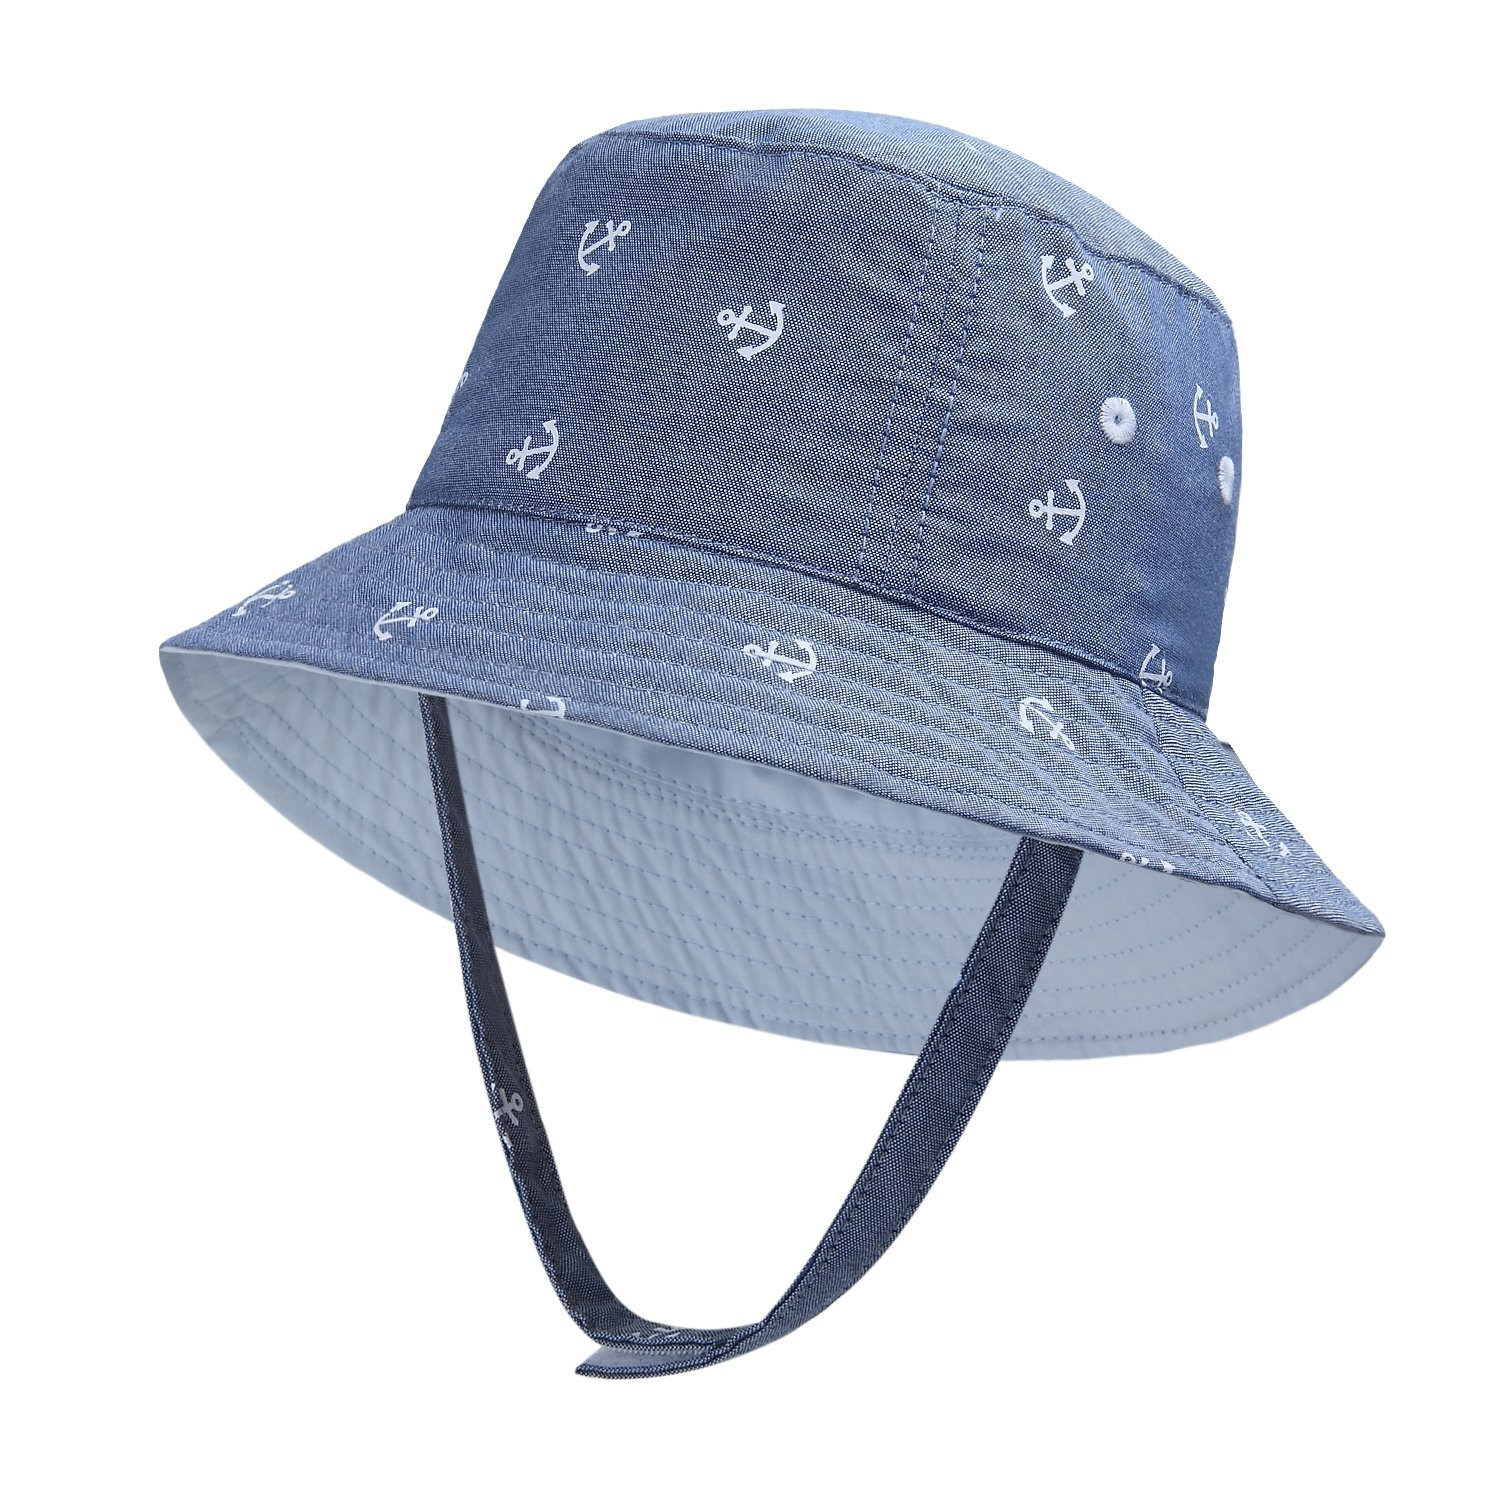 8ee4b01a282 Detail Feedback Questions about Anchor Print Baby Sun Protection Hat for Kids  Sun Hat Boys Girls Bucket Hat Beach Hat on Aliexpress.com